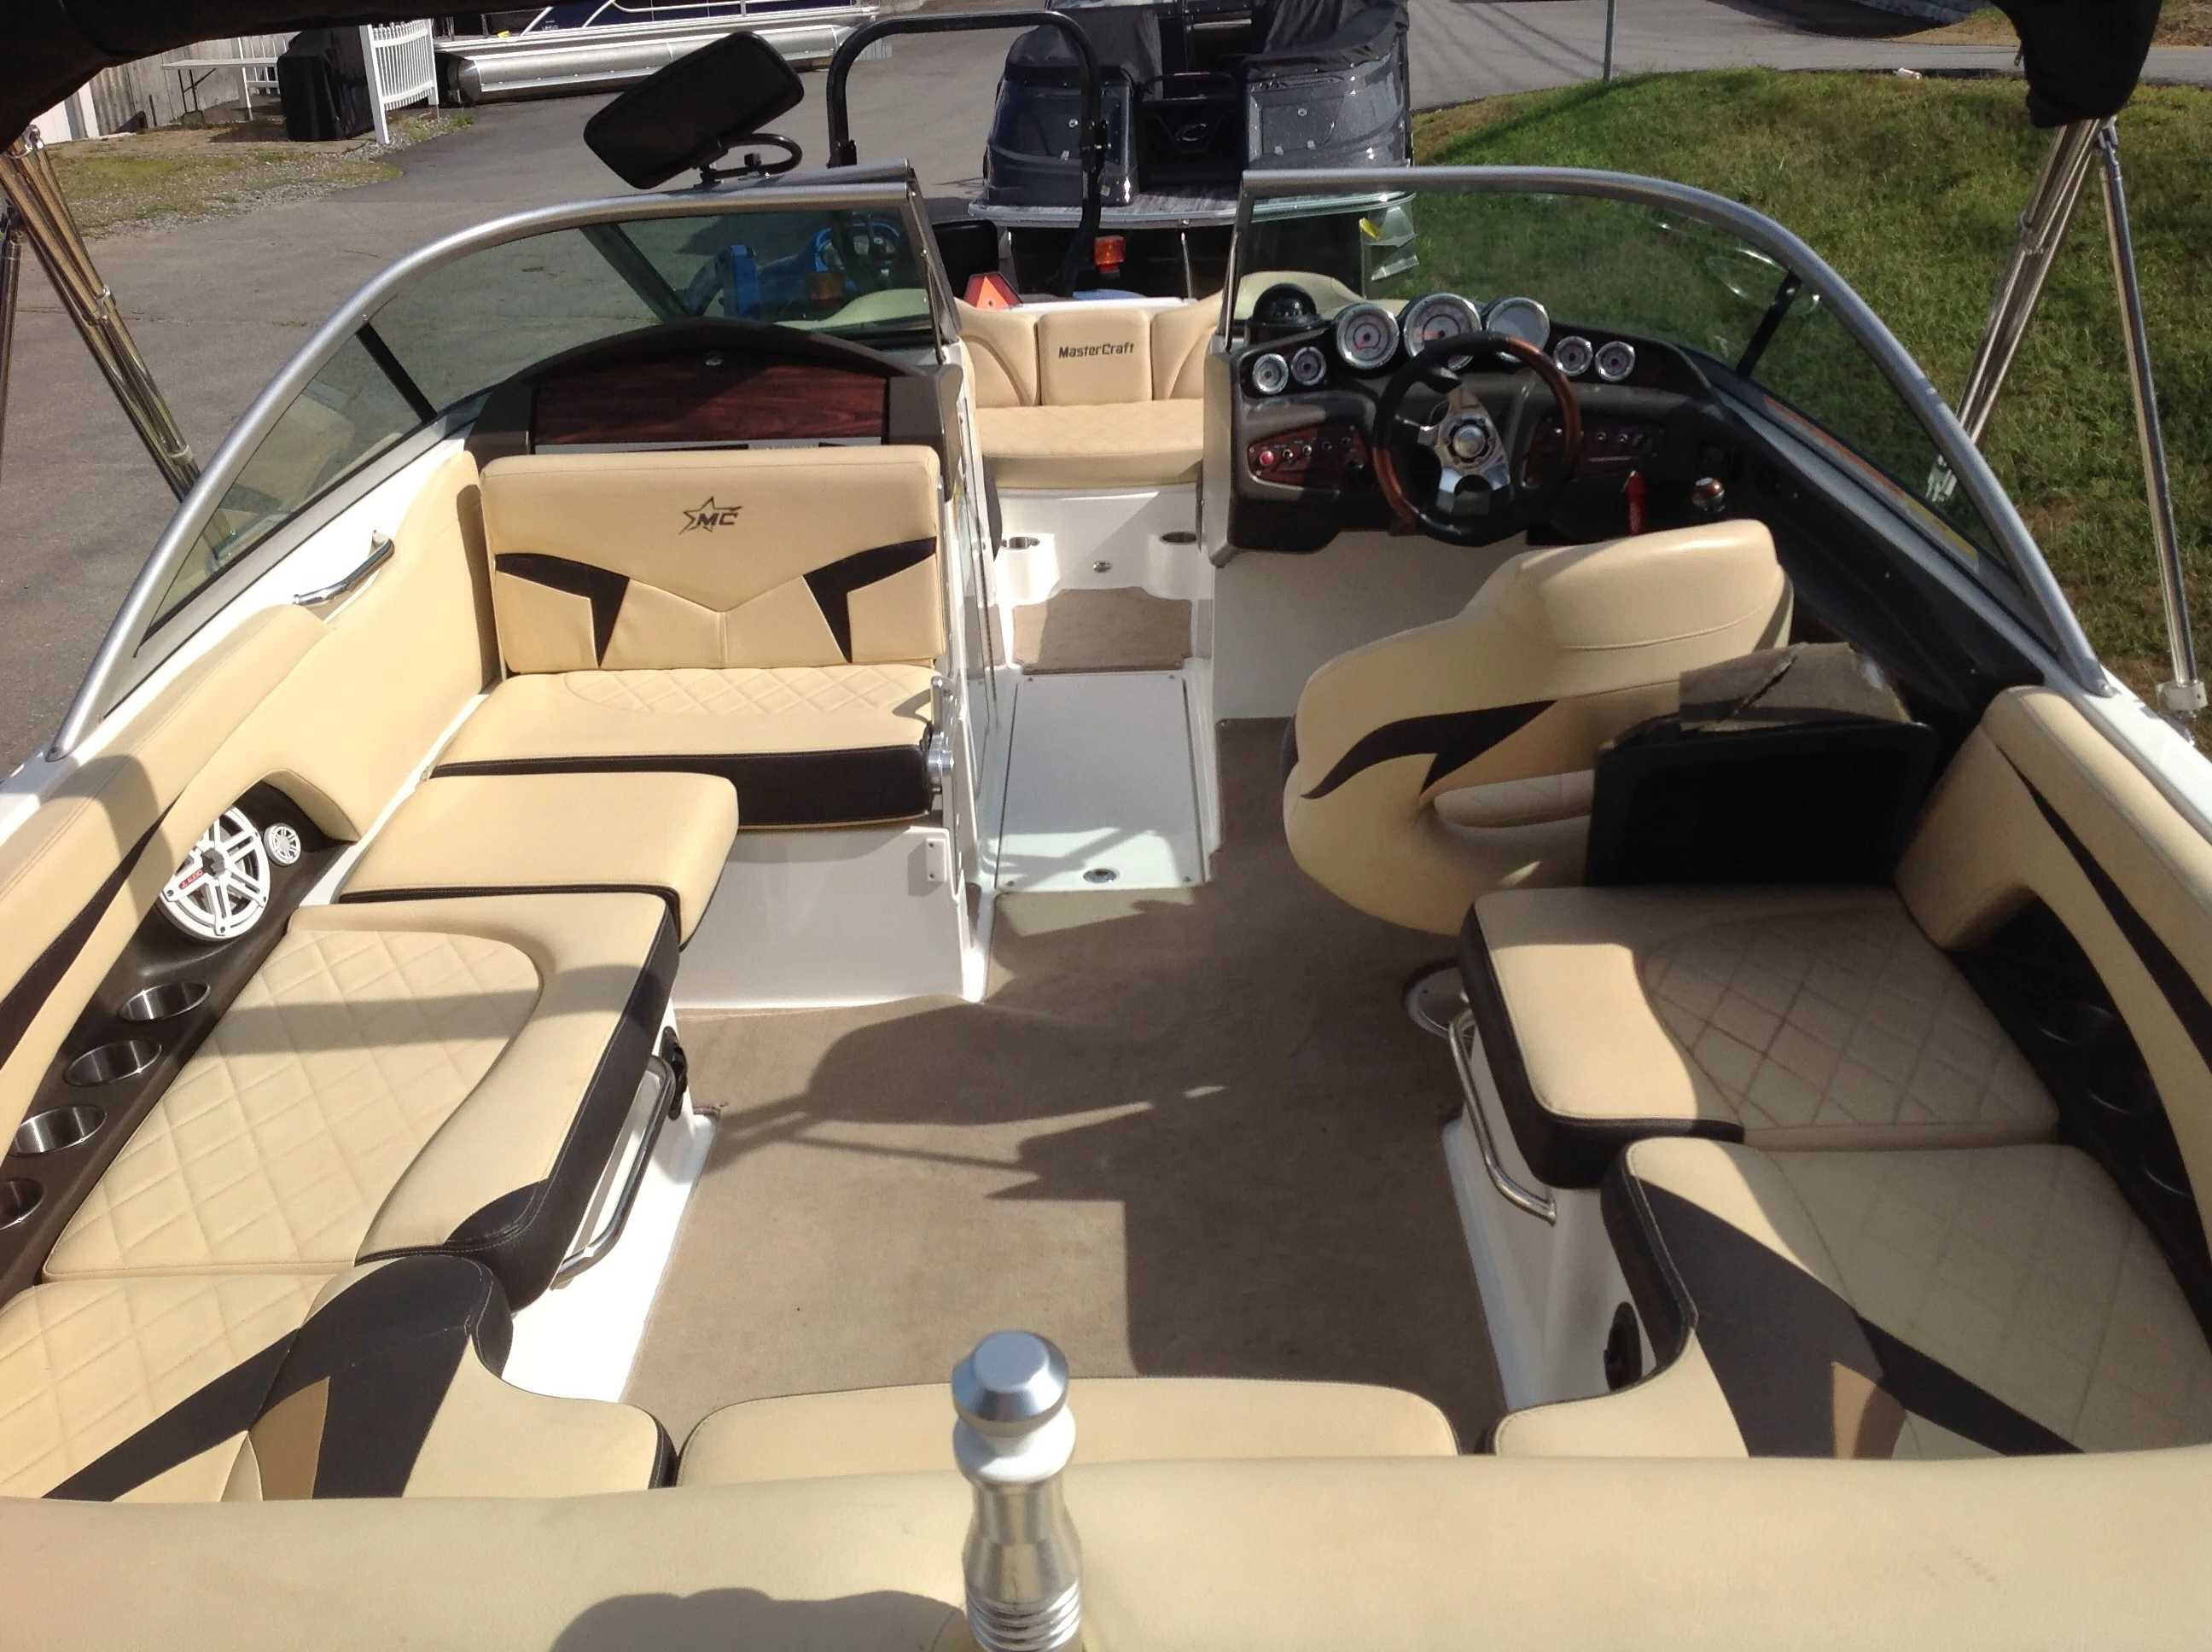 2010 Mastercraft boat for sale, model of the boat is Maristar 235 & Image # 13 of 16